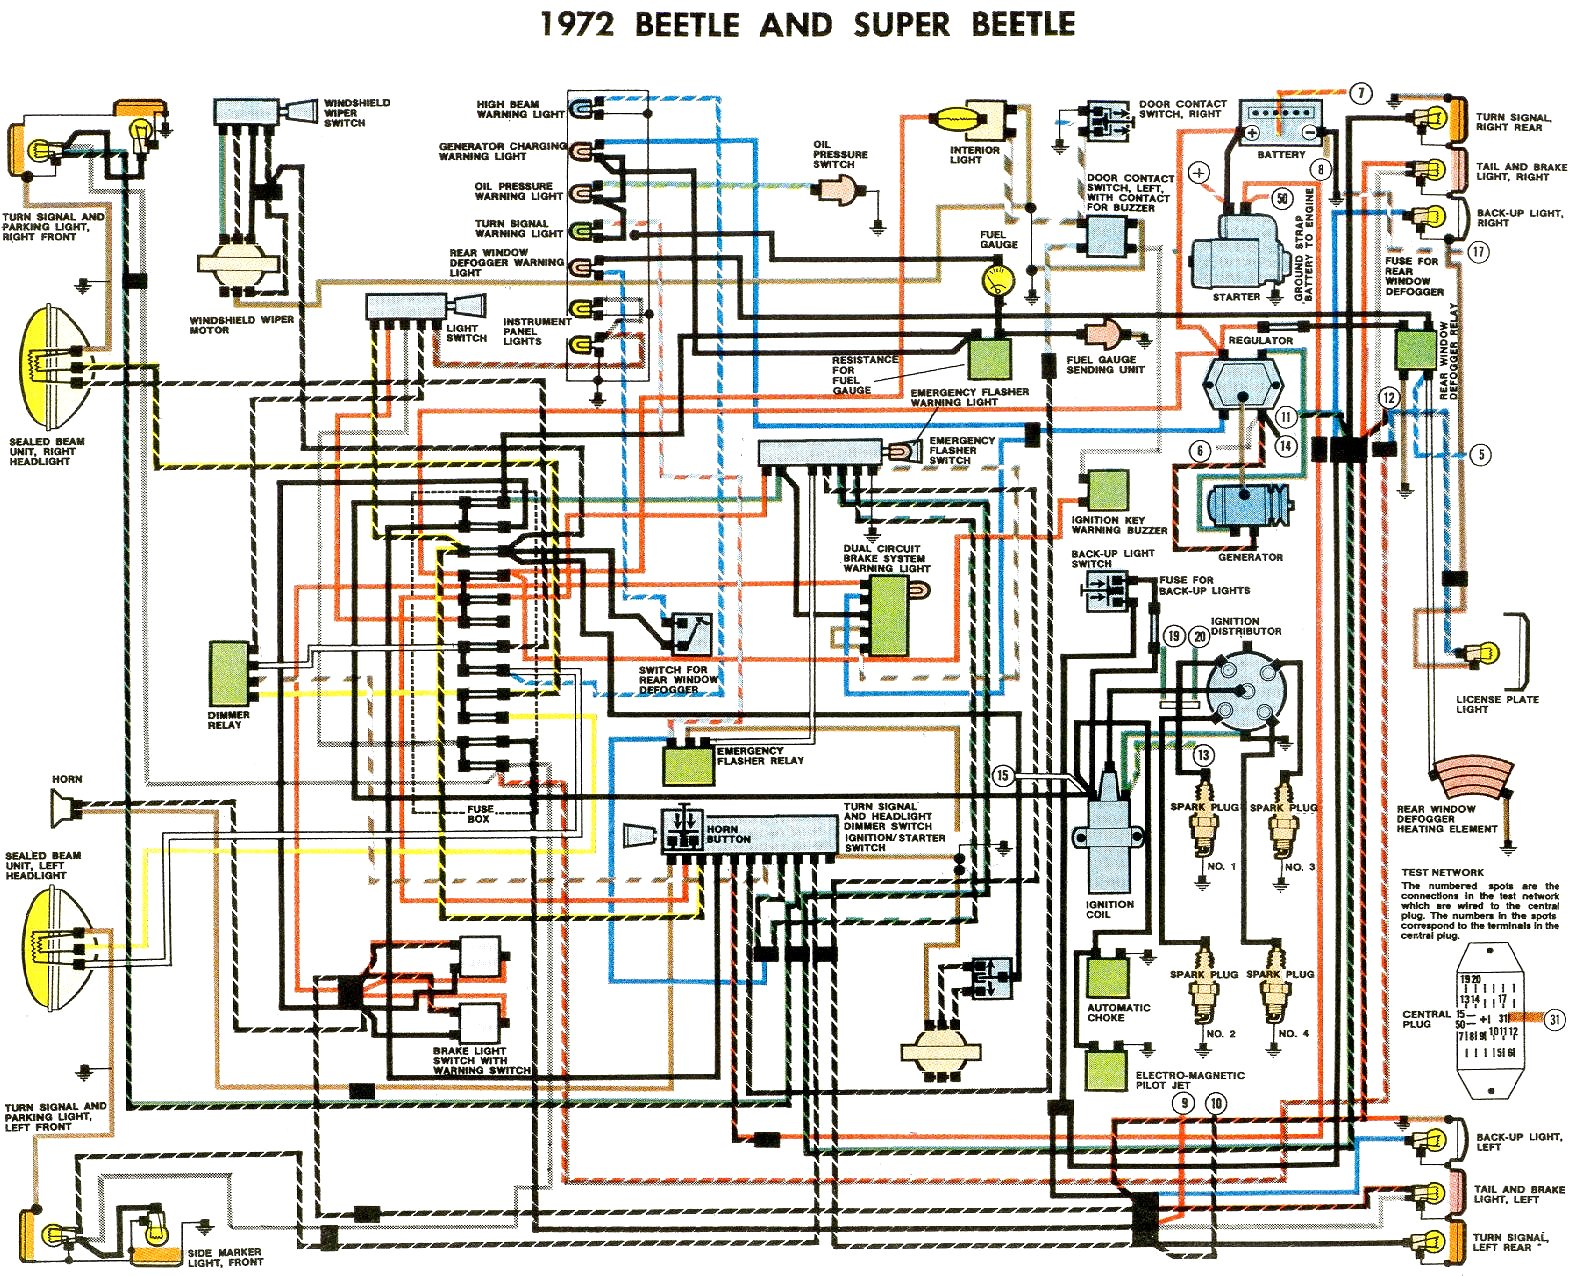 hight resolution of 1972 vw beetle wire schematic wiring diagram sheet 1972 super beetle wiring diagram 1972 beetle wiring